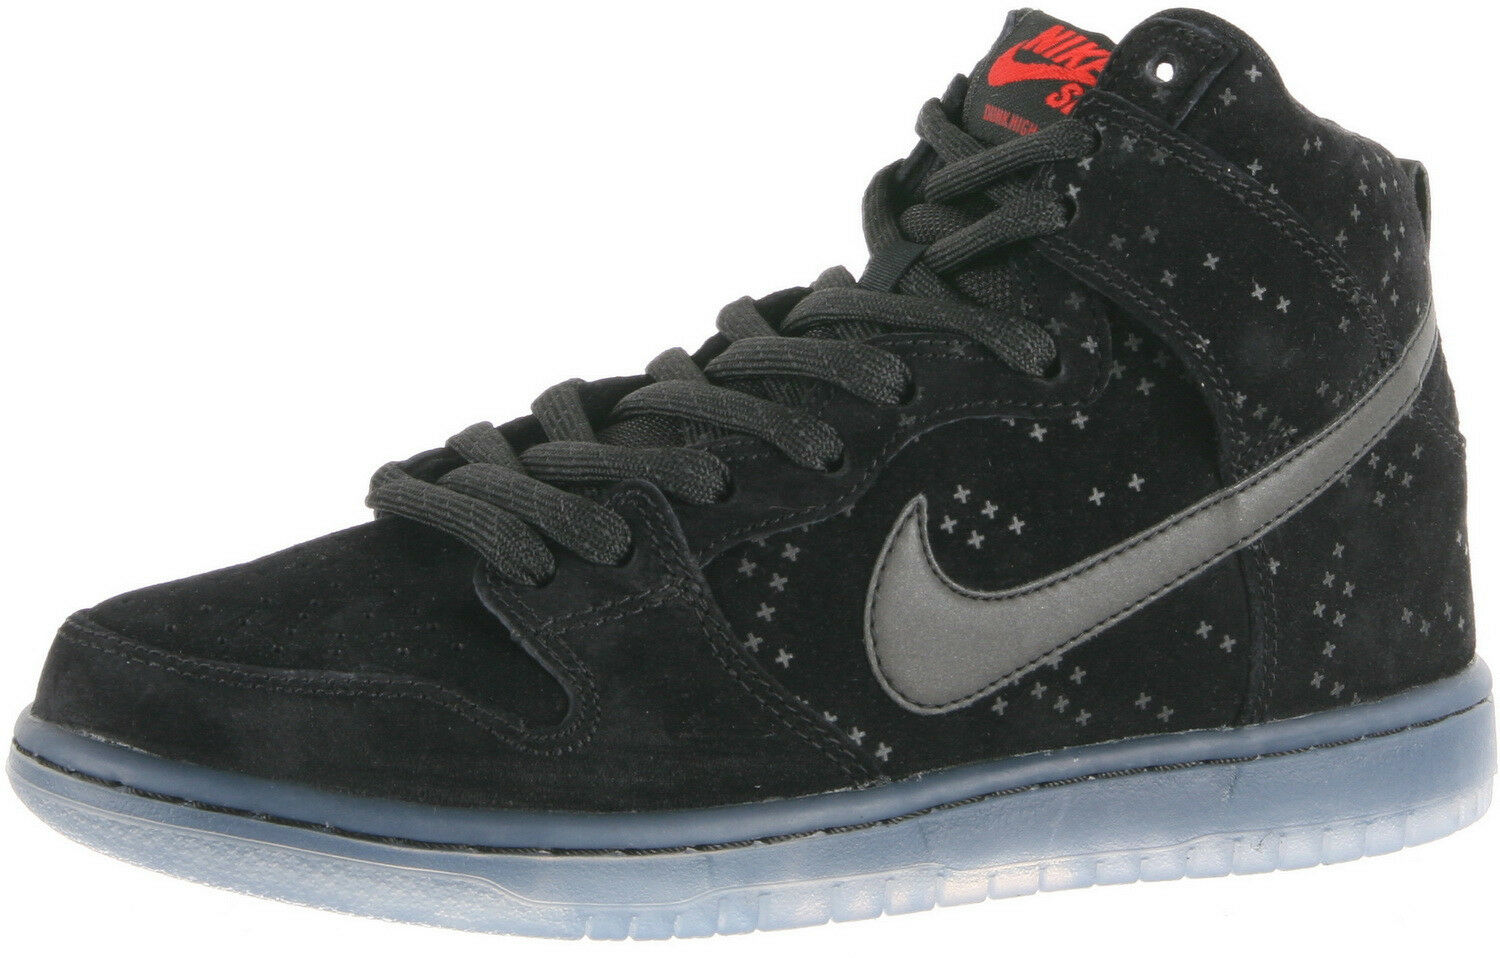 Nike DUNK HIGH PREM FLASH SB Black Black-Clear 806333-001 (567) Men's shoes